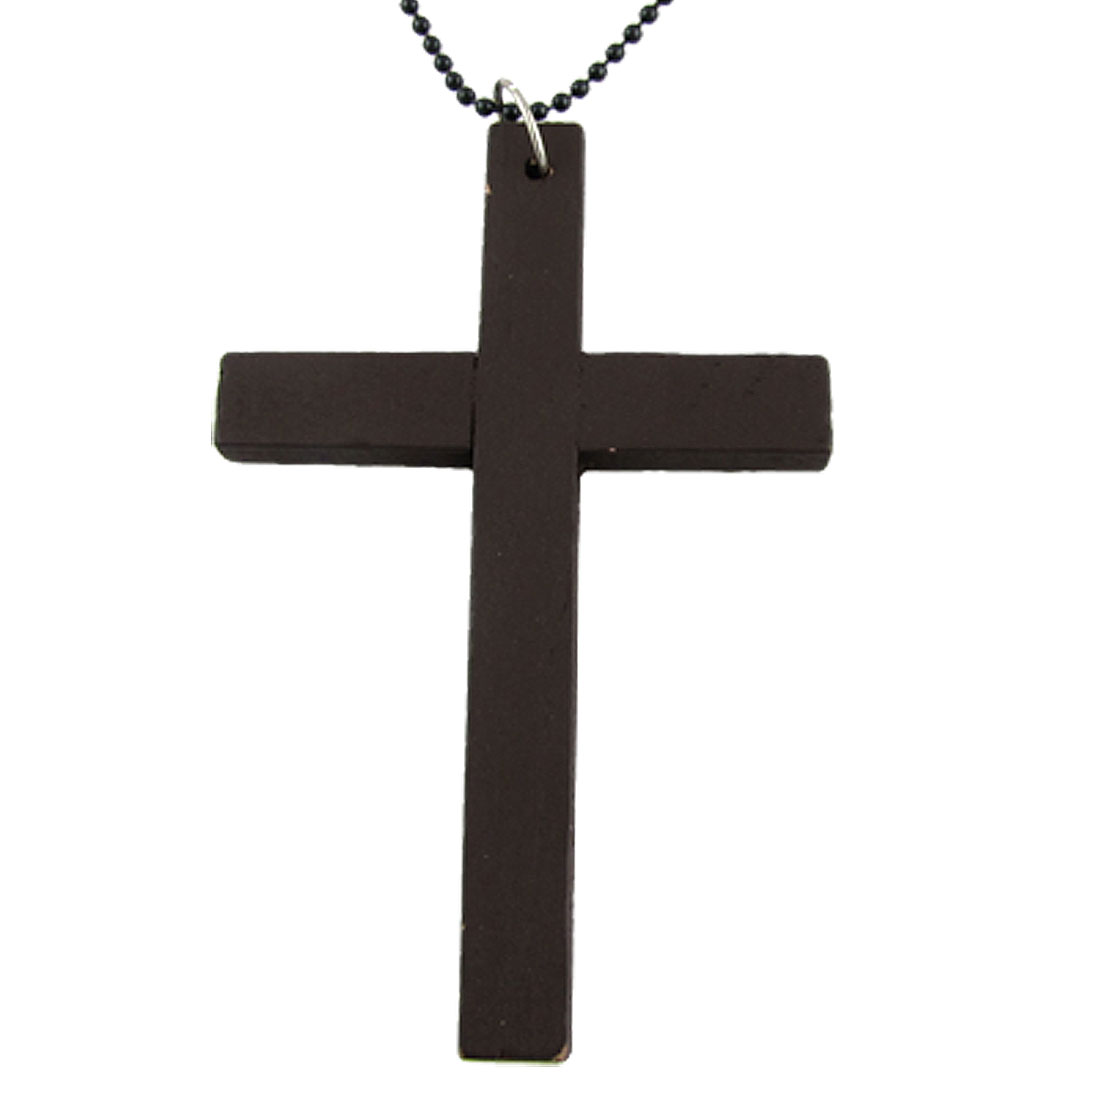 Coffee Color Wooden Latin Cross Pendant Necklace Clothing Decor